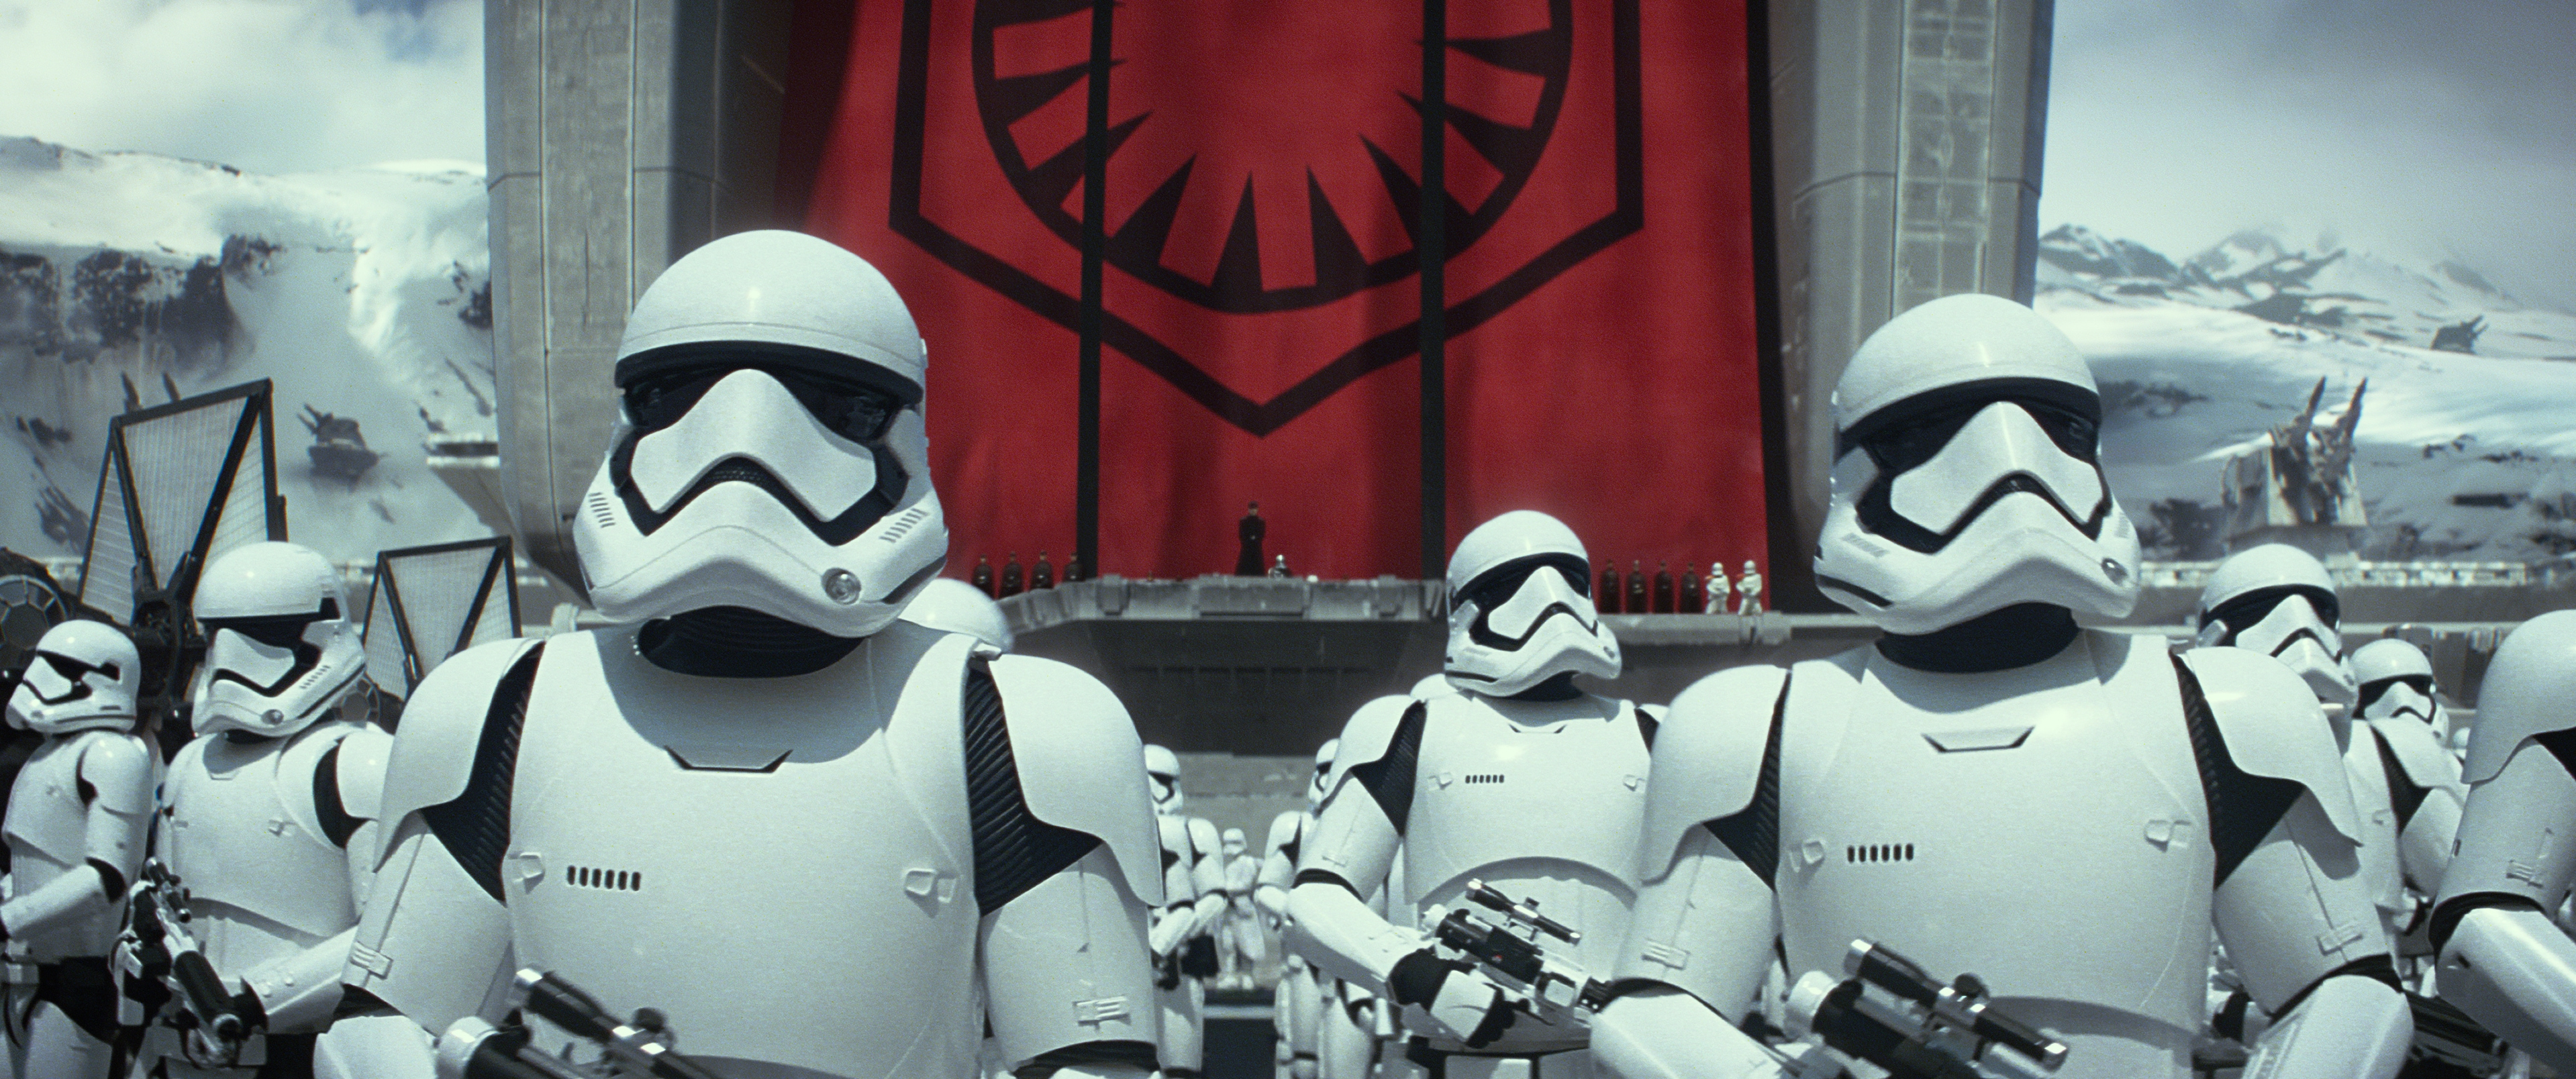 Stormtroopers of the First Order